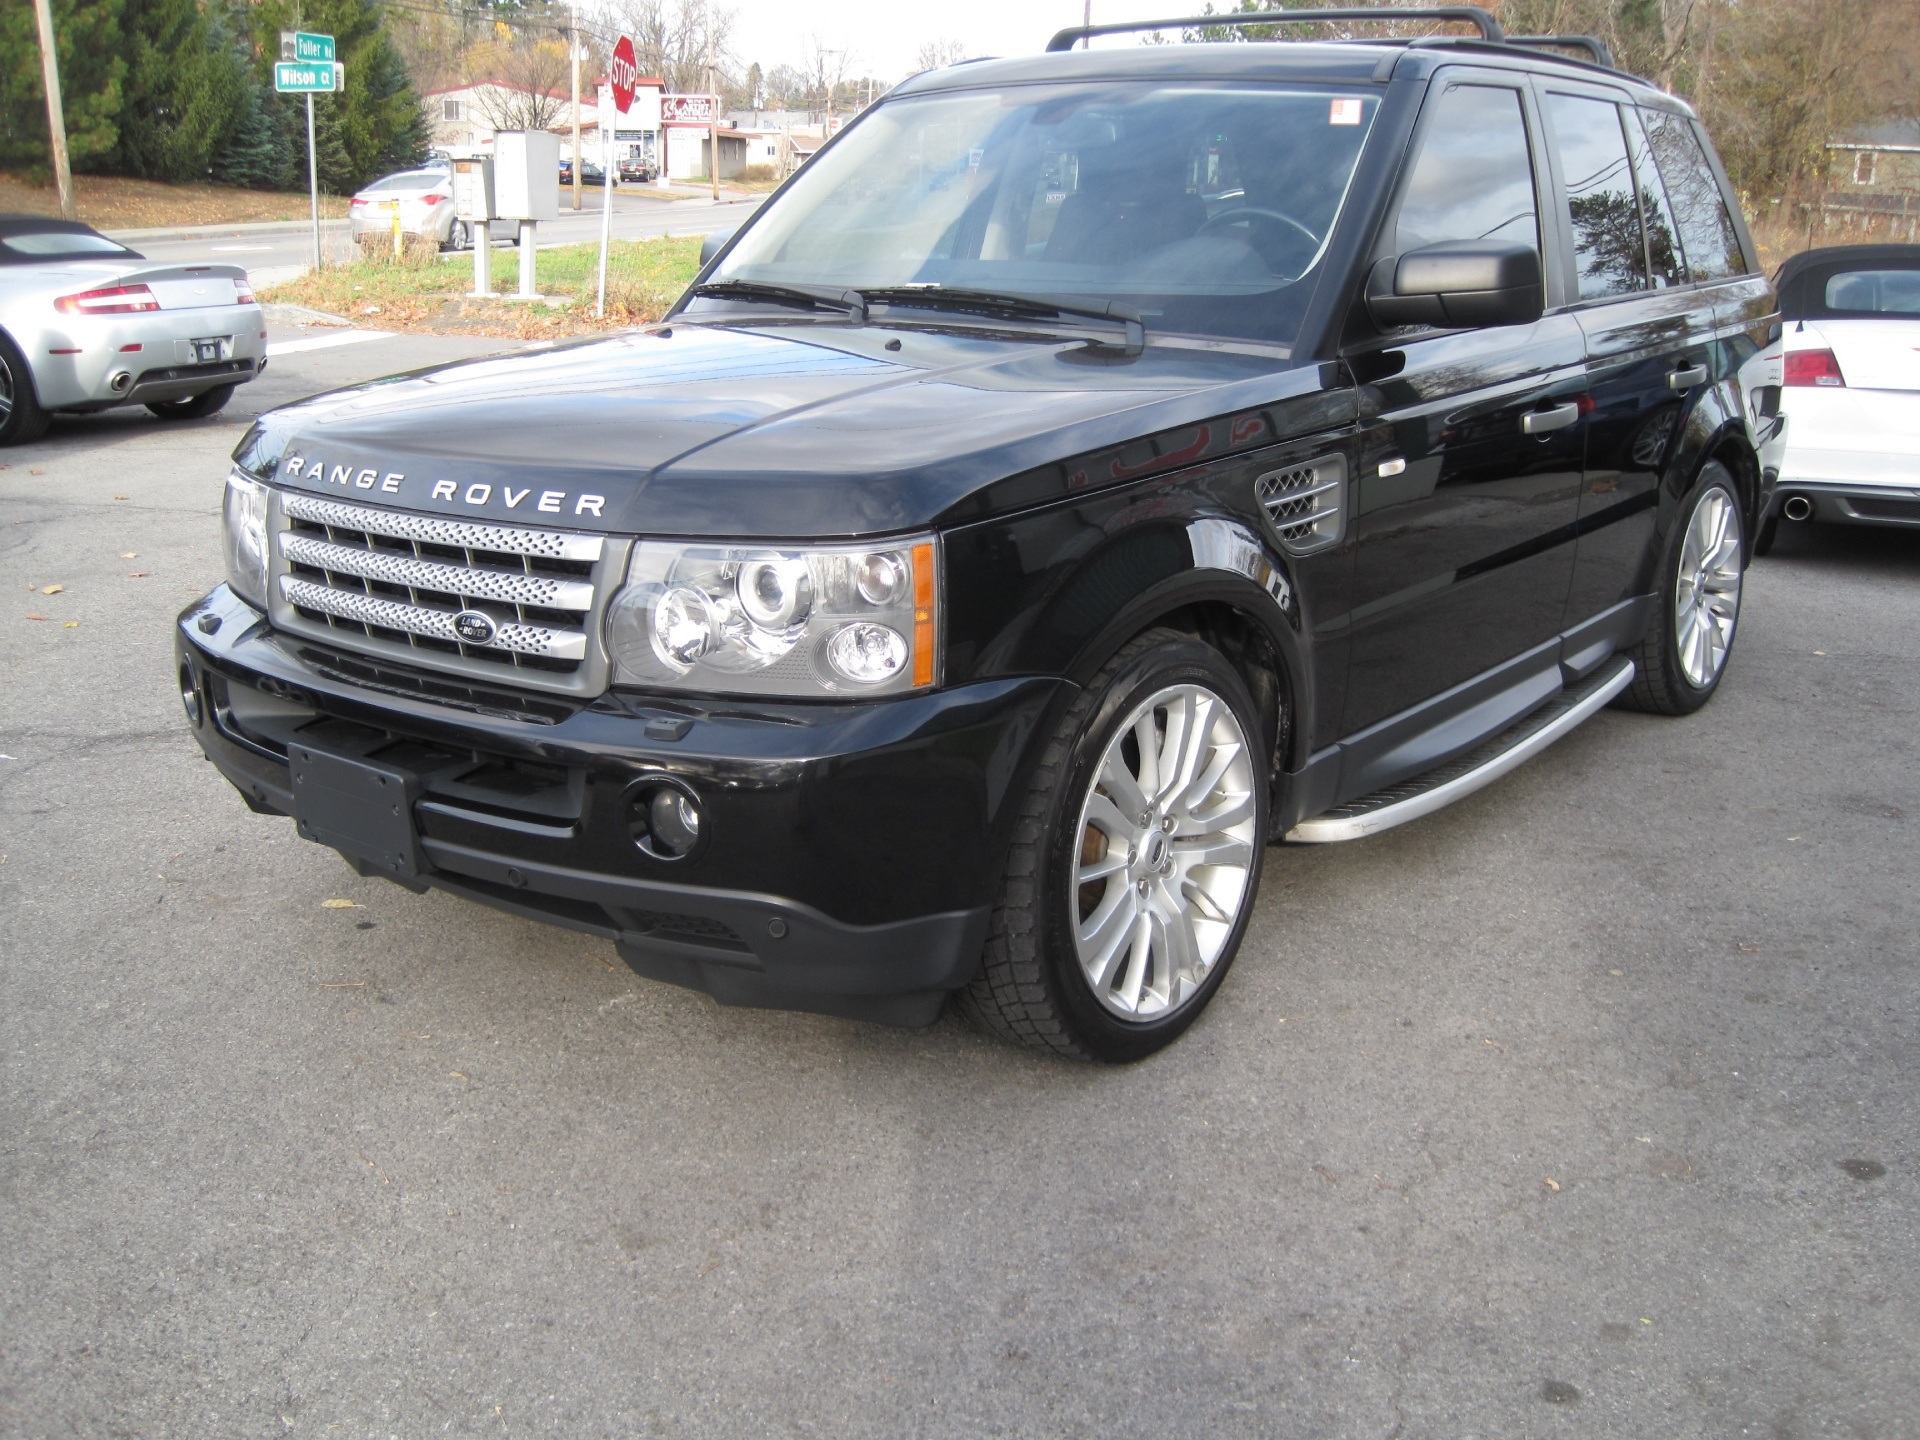 2009 land rover range rover sport supercharged very clean inside and out low miles stock 15158. Black Bedroom Furniture Sets. Home Design Ideas